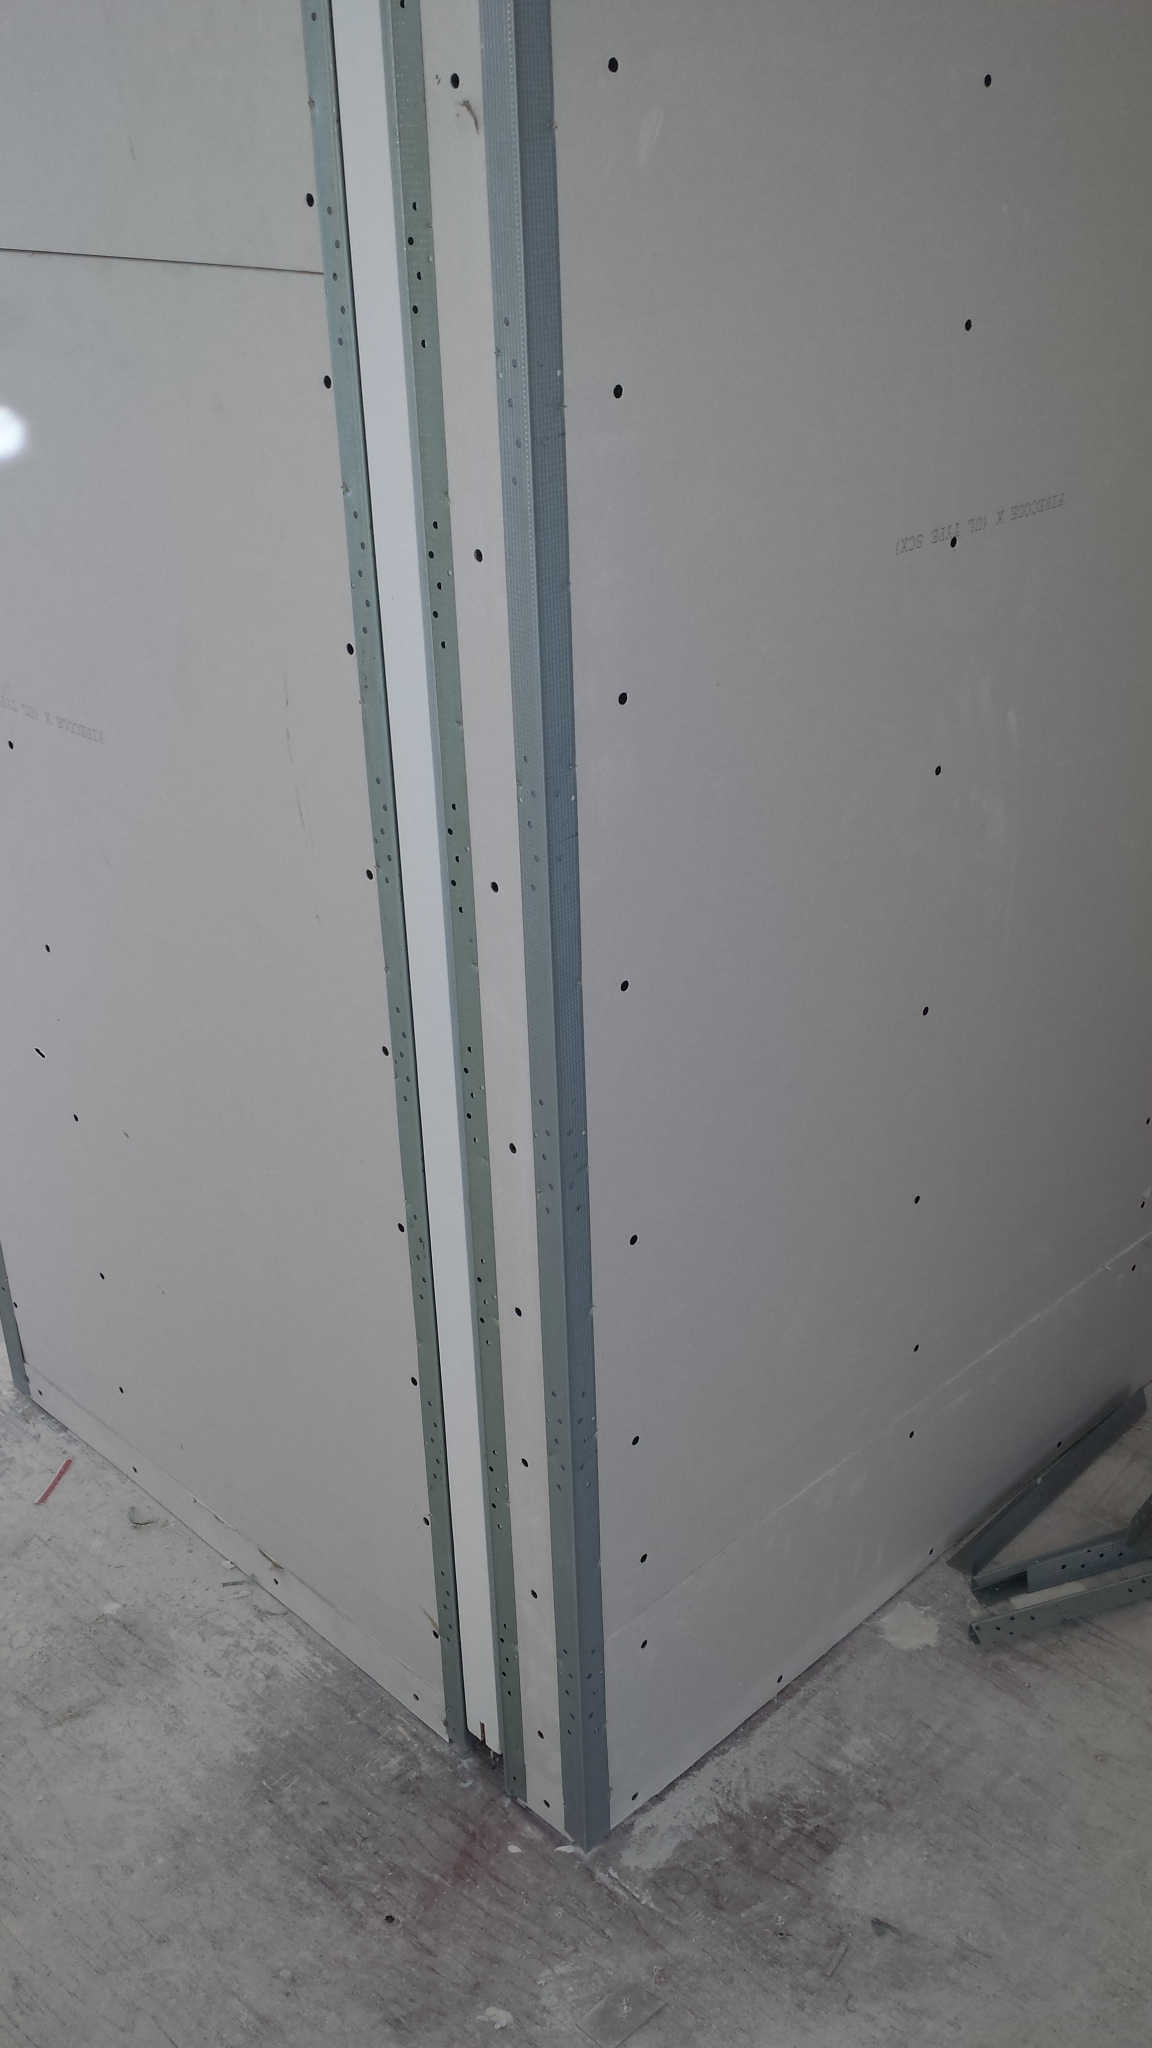 After the drywall is hung next to the opening, the drywall guys install edge metal around the opening. This allows a clean finish right up to the opening of the pocket.